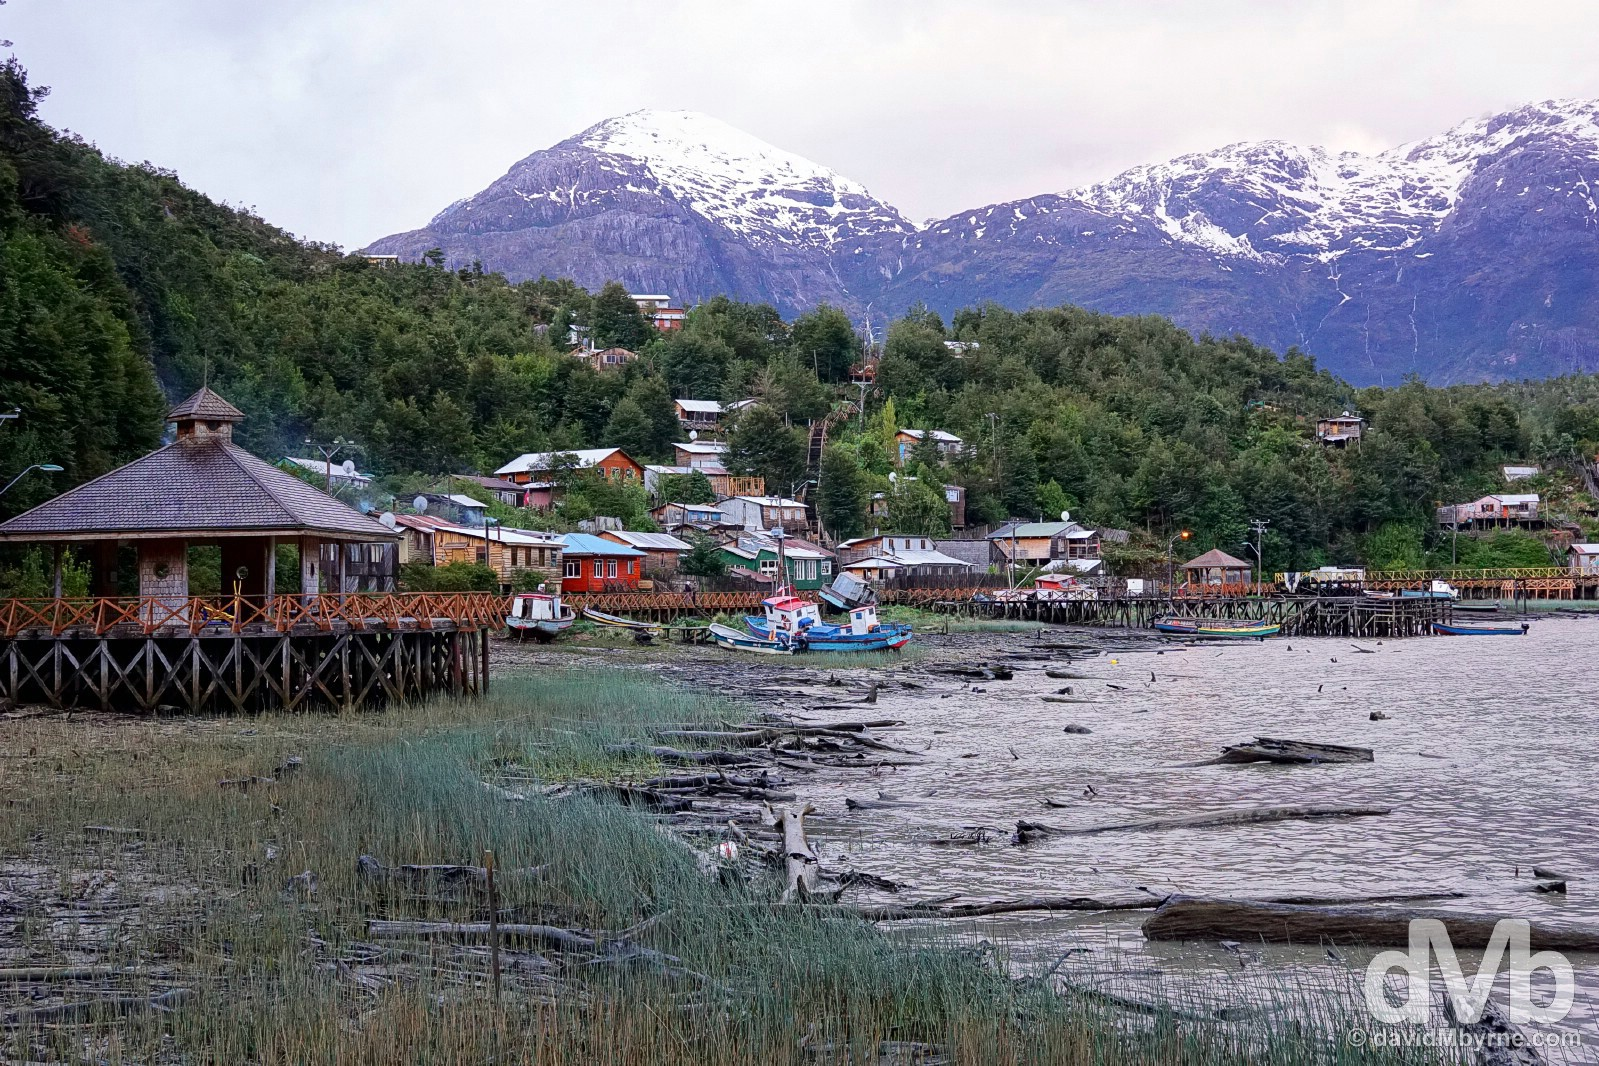 Low tide in Caleta Tortel, Aysen, Chile. October 28, 2015.